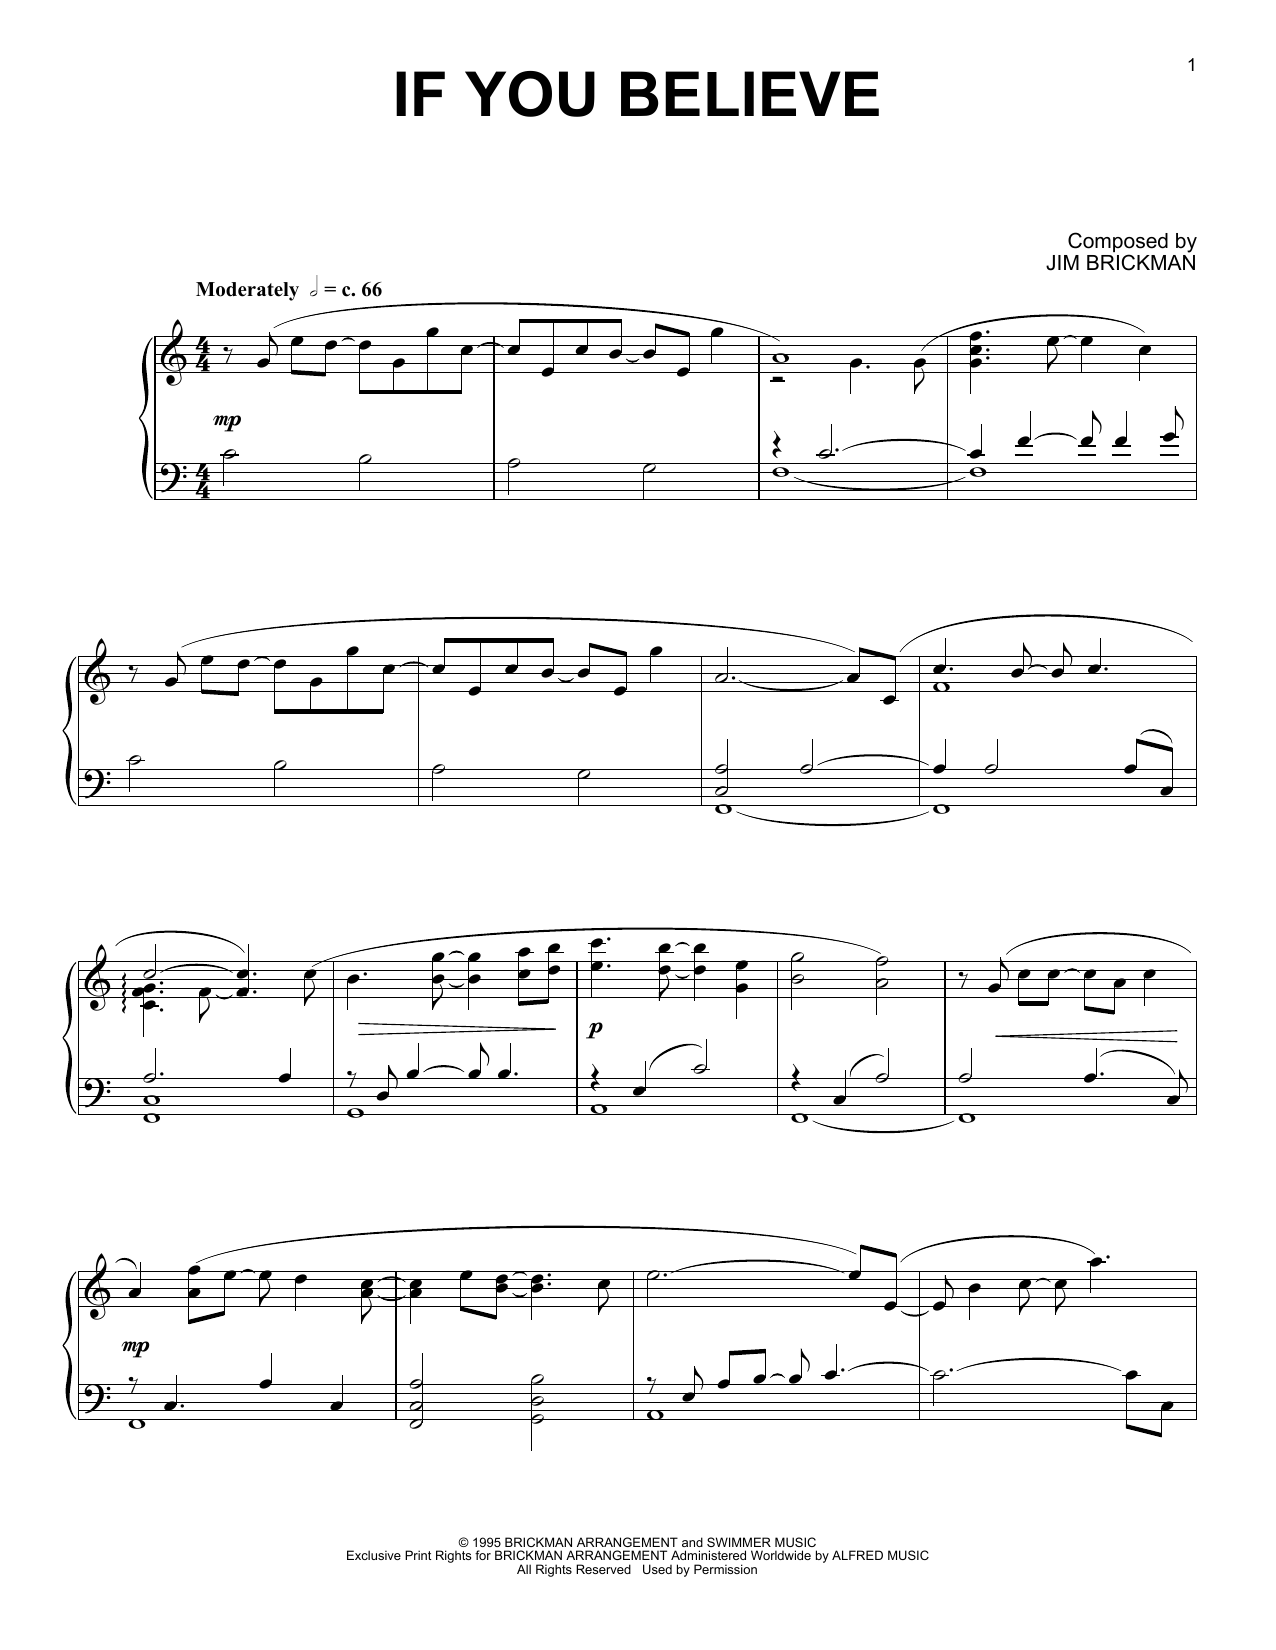 Download Jim Brickman 'If You Believe' Digital Sheet Music Notes & Chords and start playing in minutes